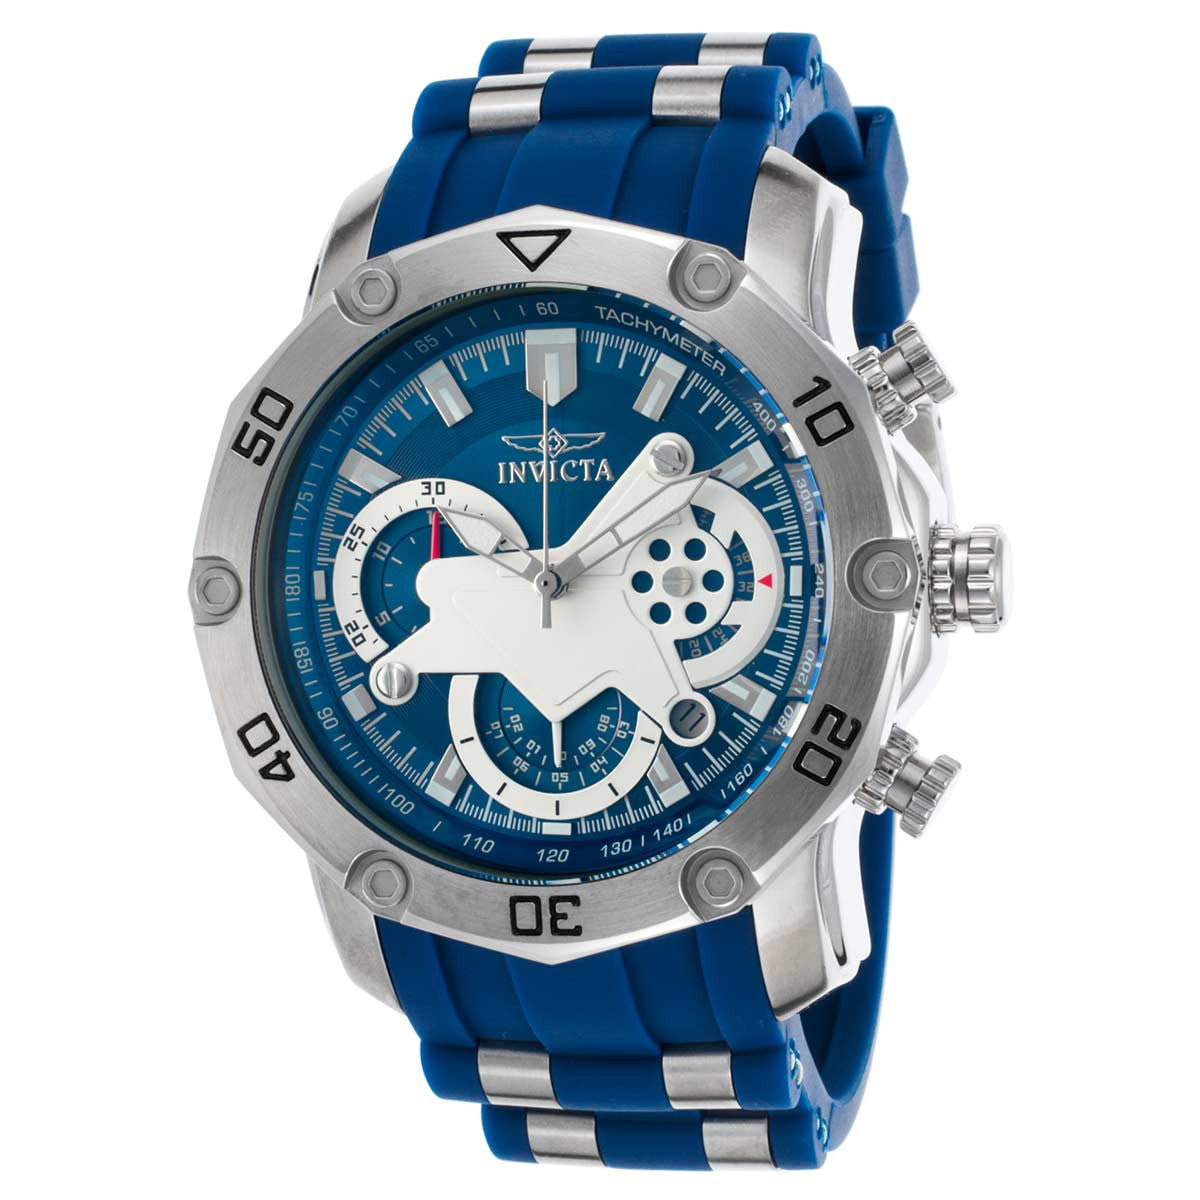 Invicta 22796 Men's Blue & White Dial Chronograph Date Watch 22796